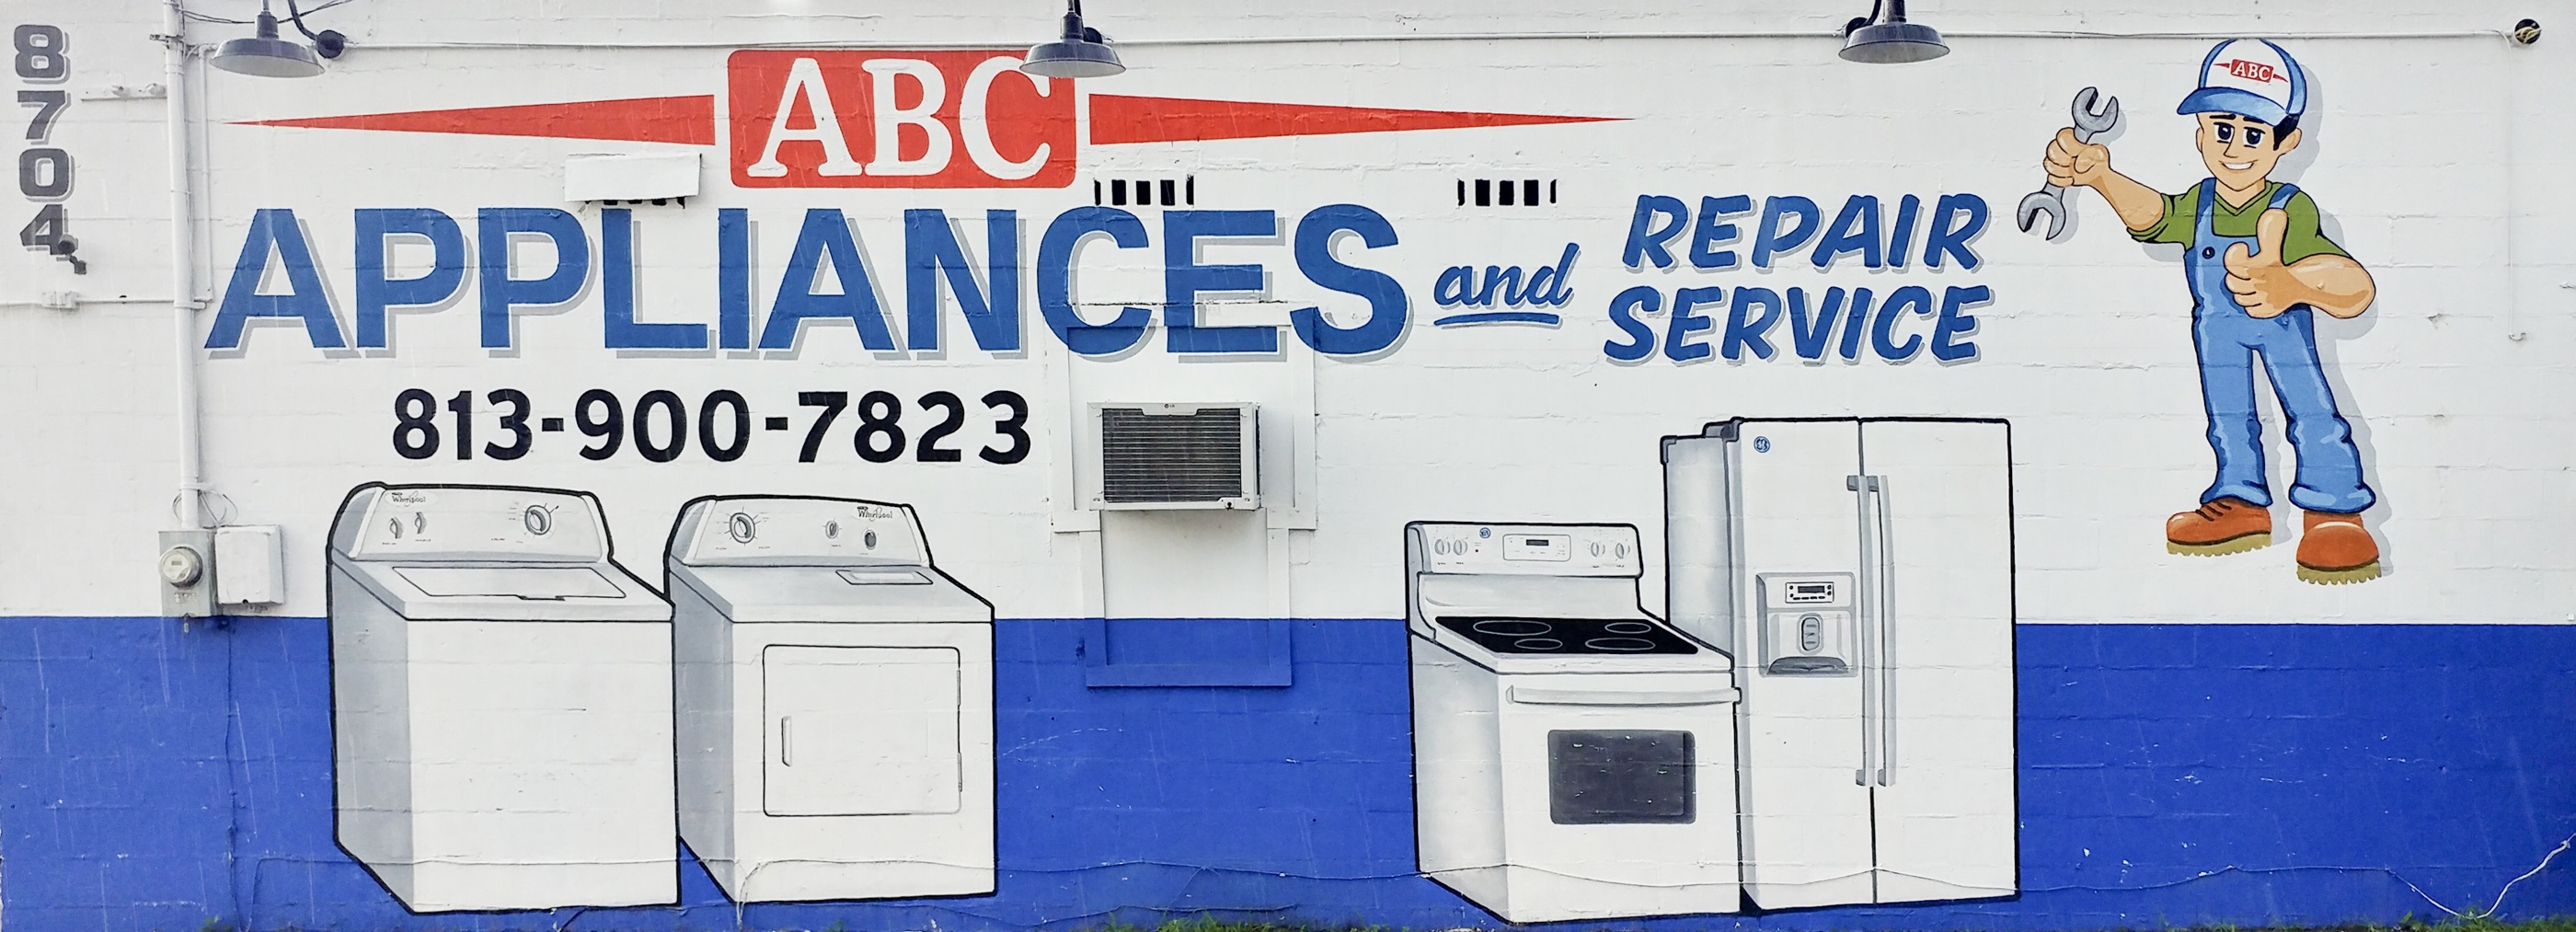 Affordable Discounted Used Appliances In Tampa Fl